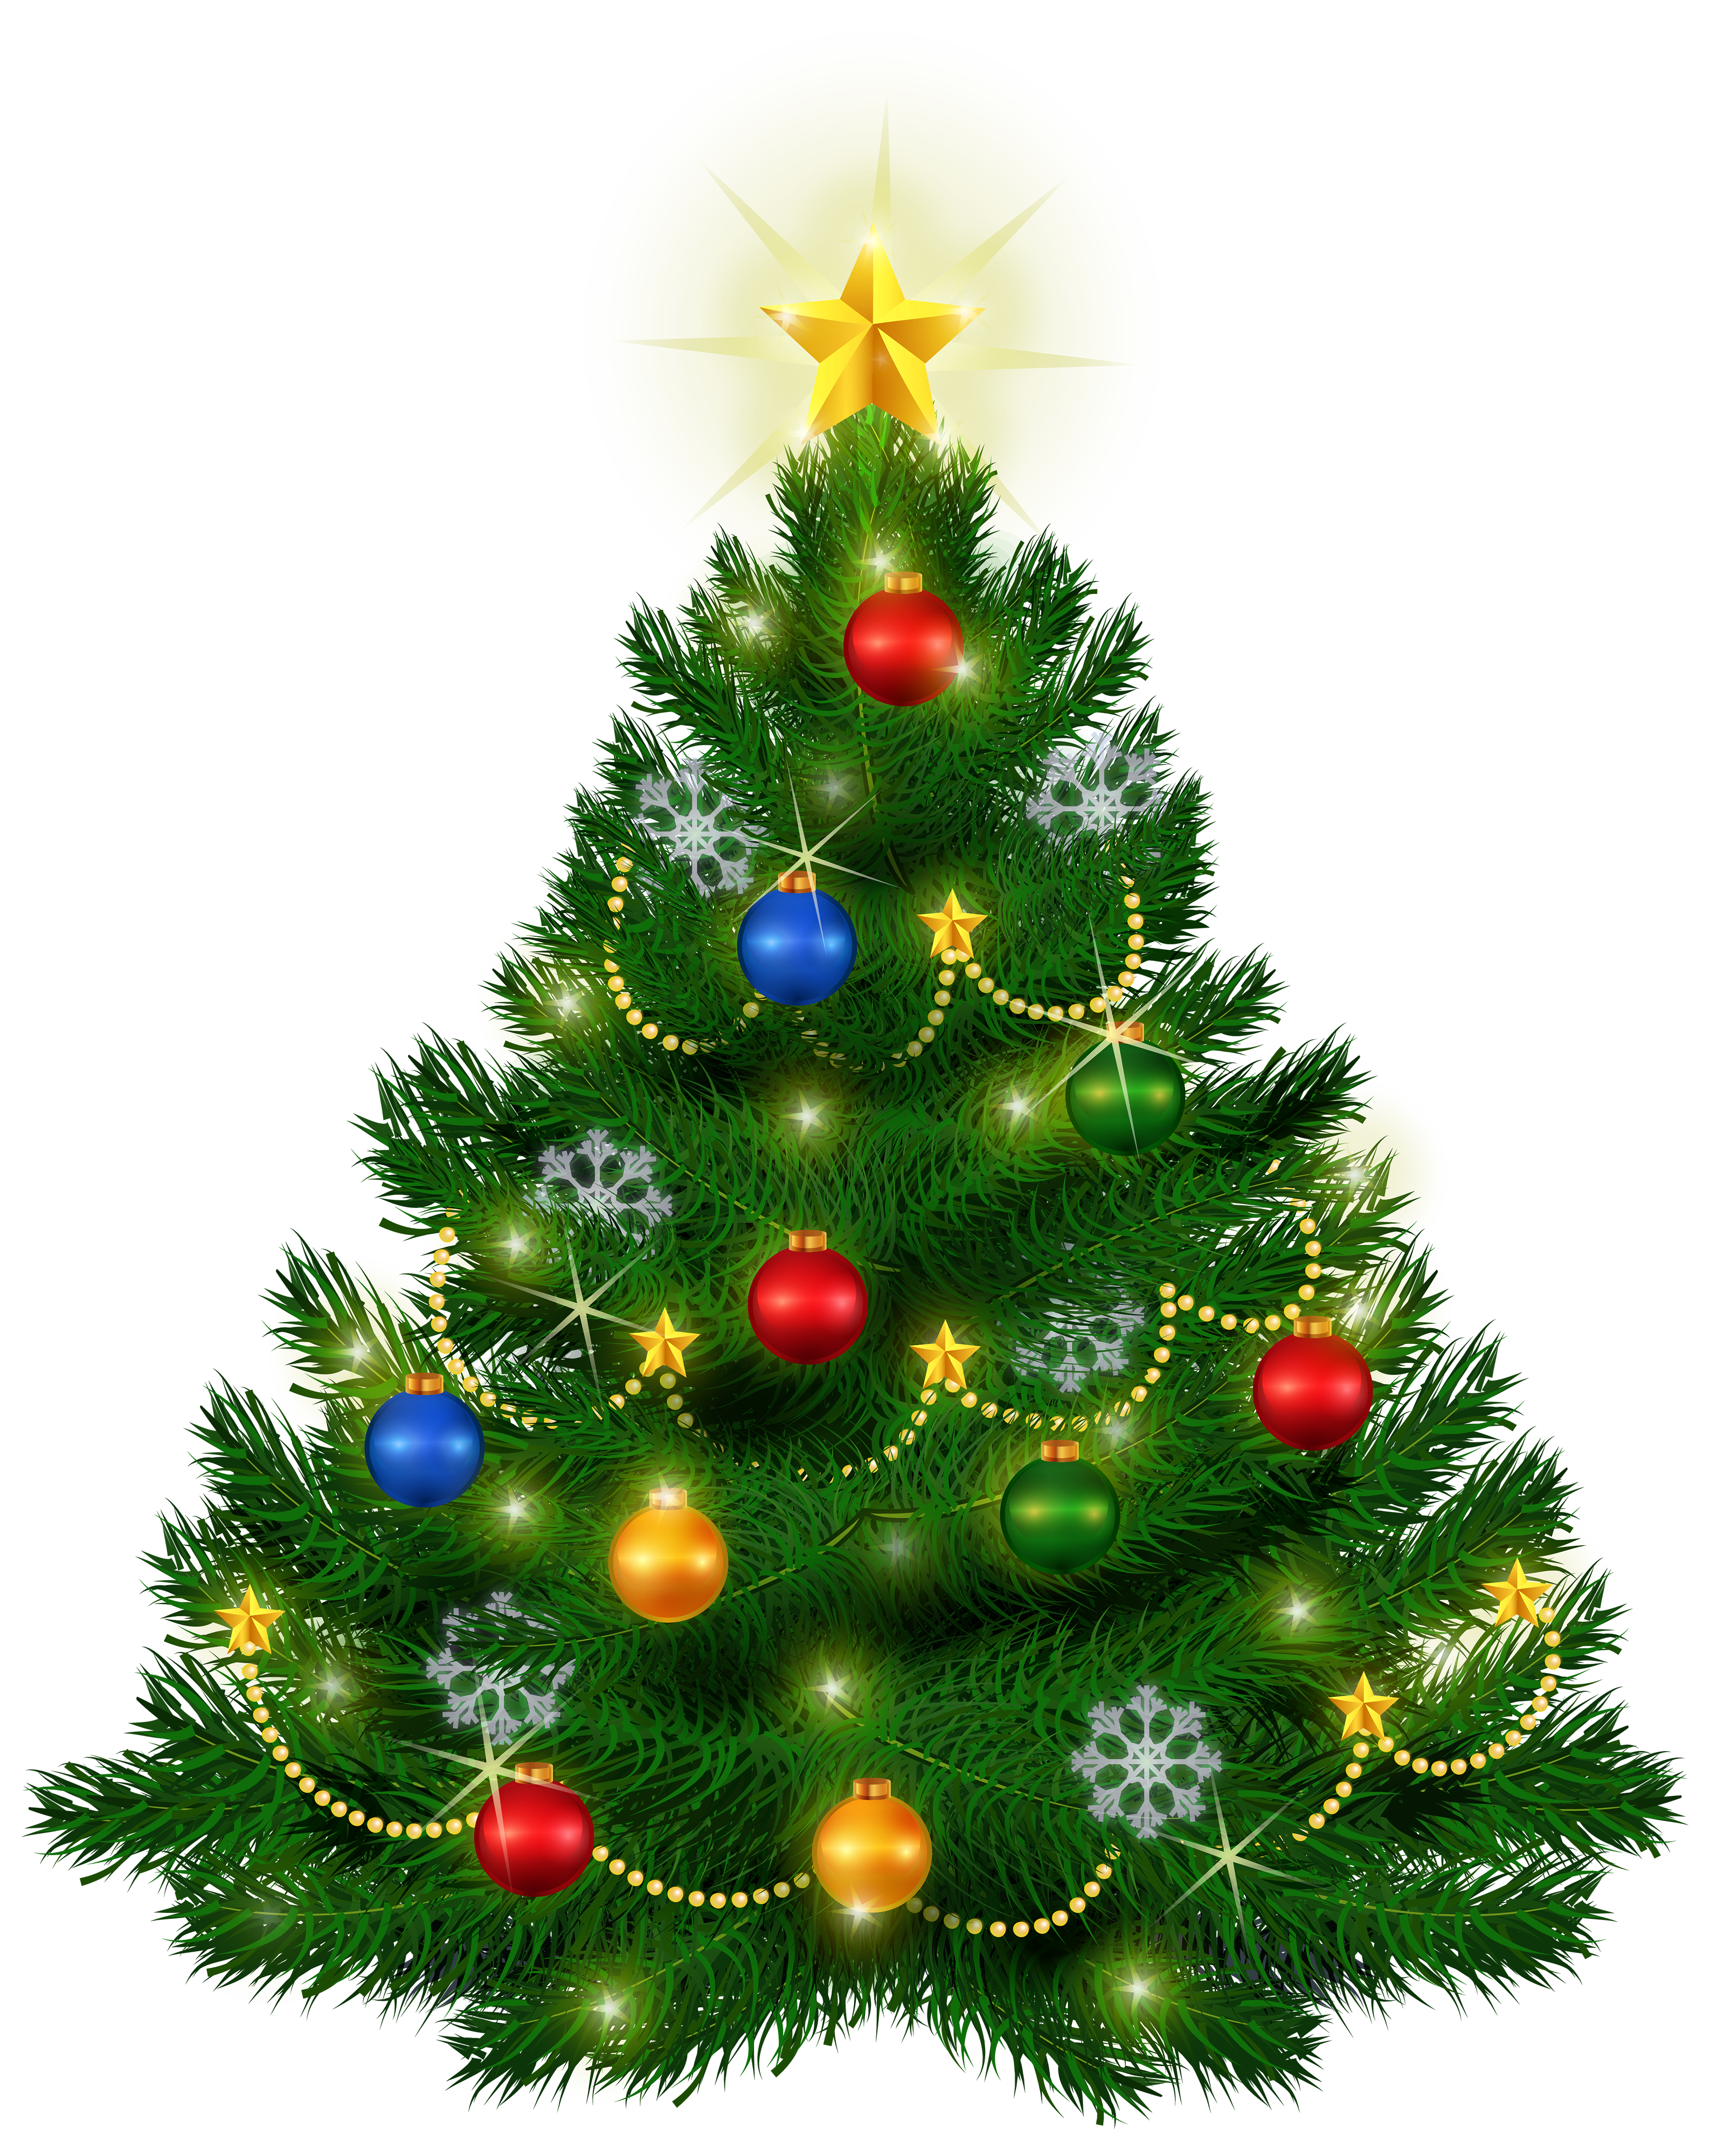 Beautiful tree png image. December clipart merry christmas